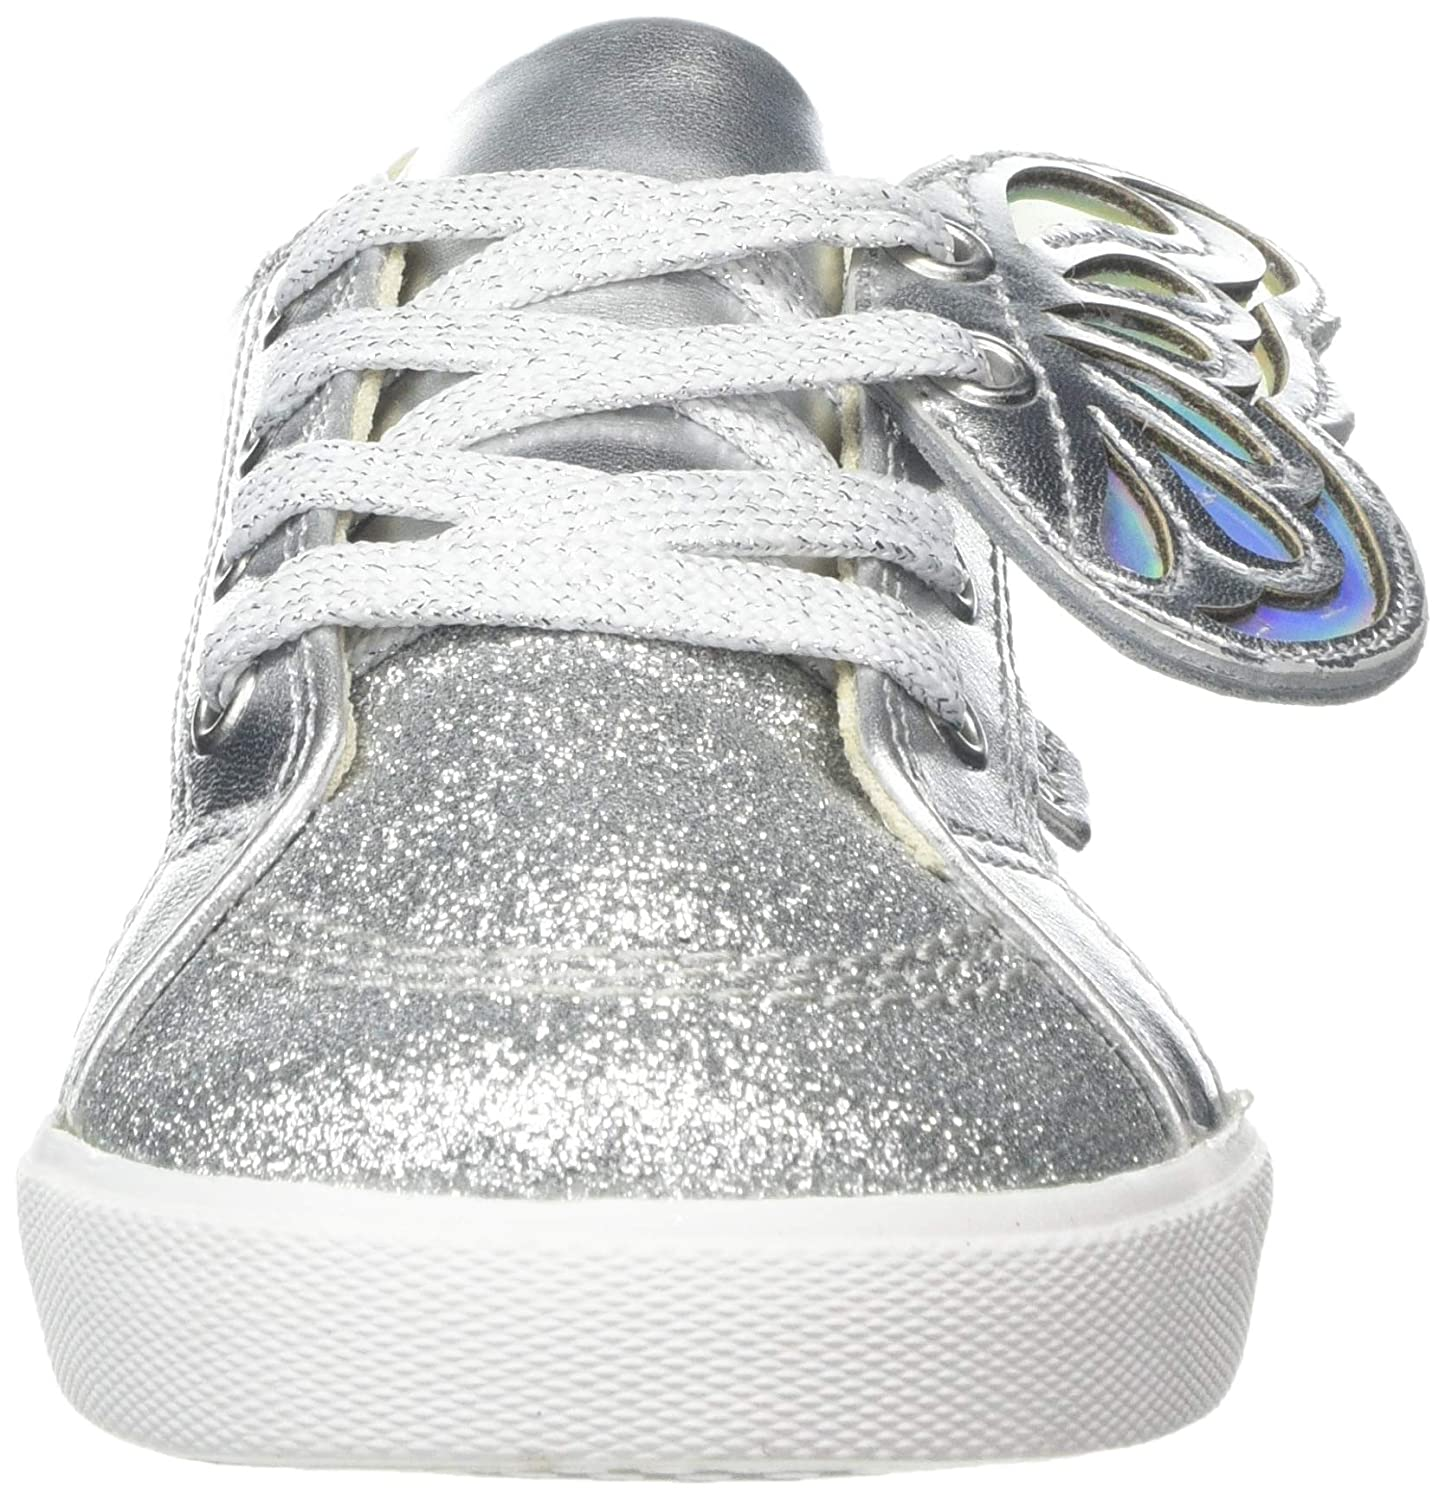 Kickers Baby Girls/' Tovni Faerie Lo Trainers